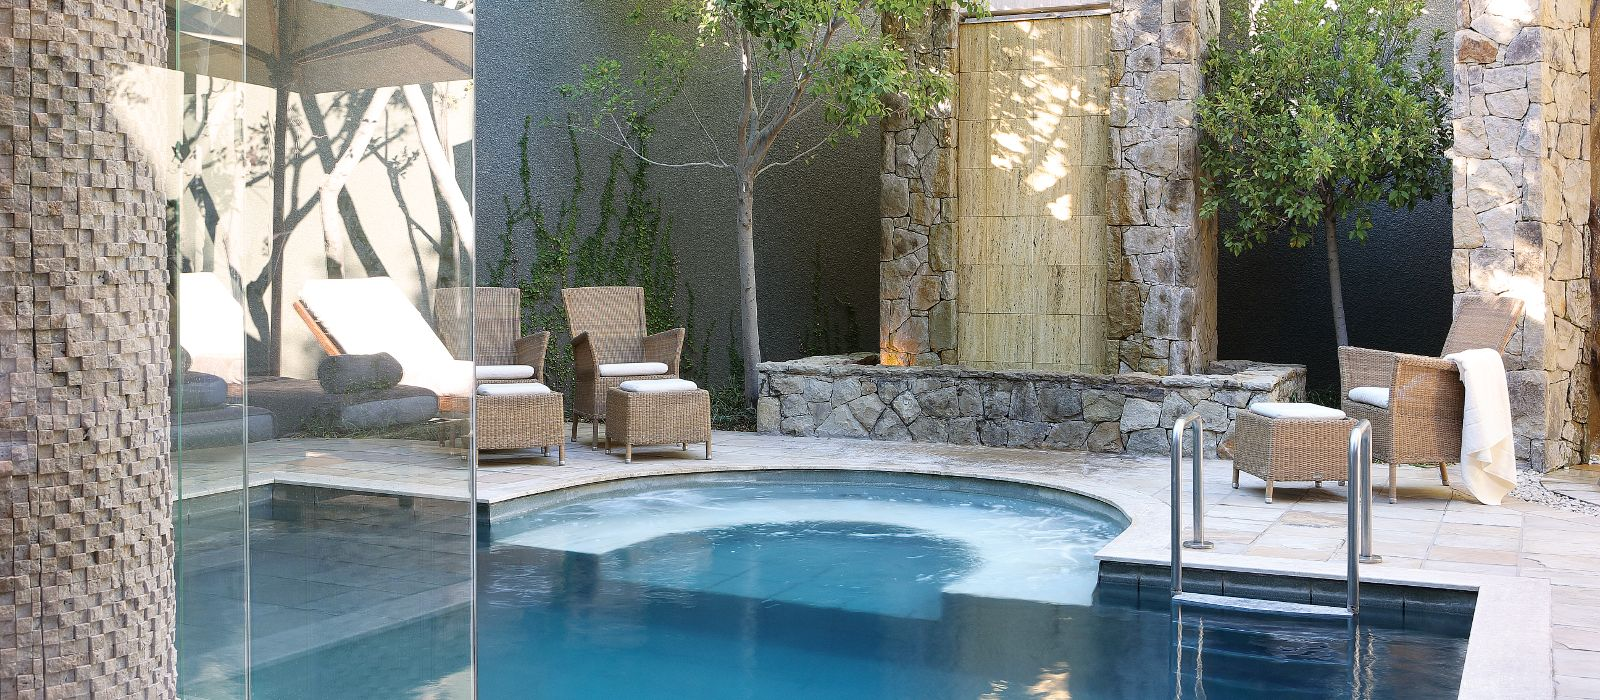 Hotel The Saxon , Villas & Spa South Africa